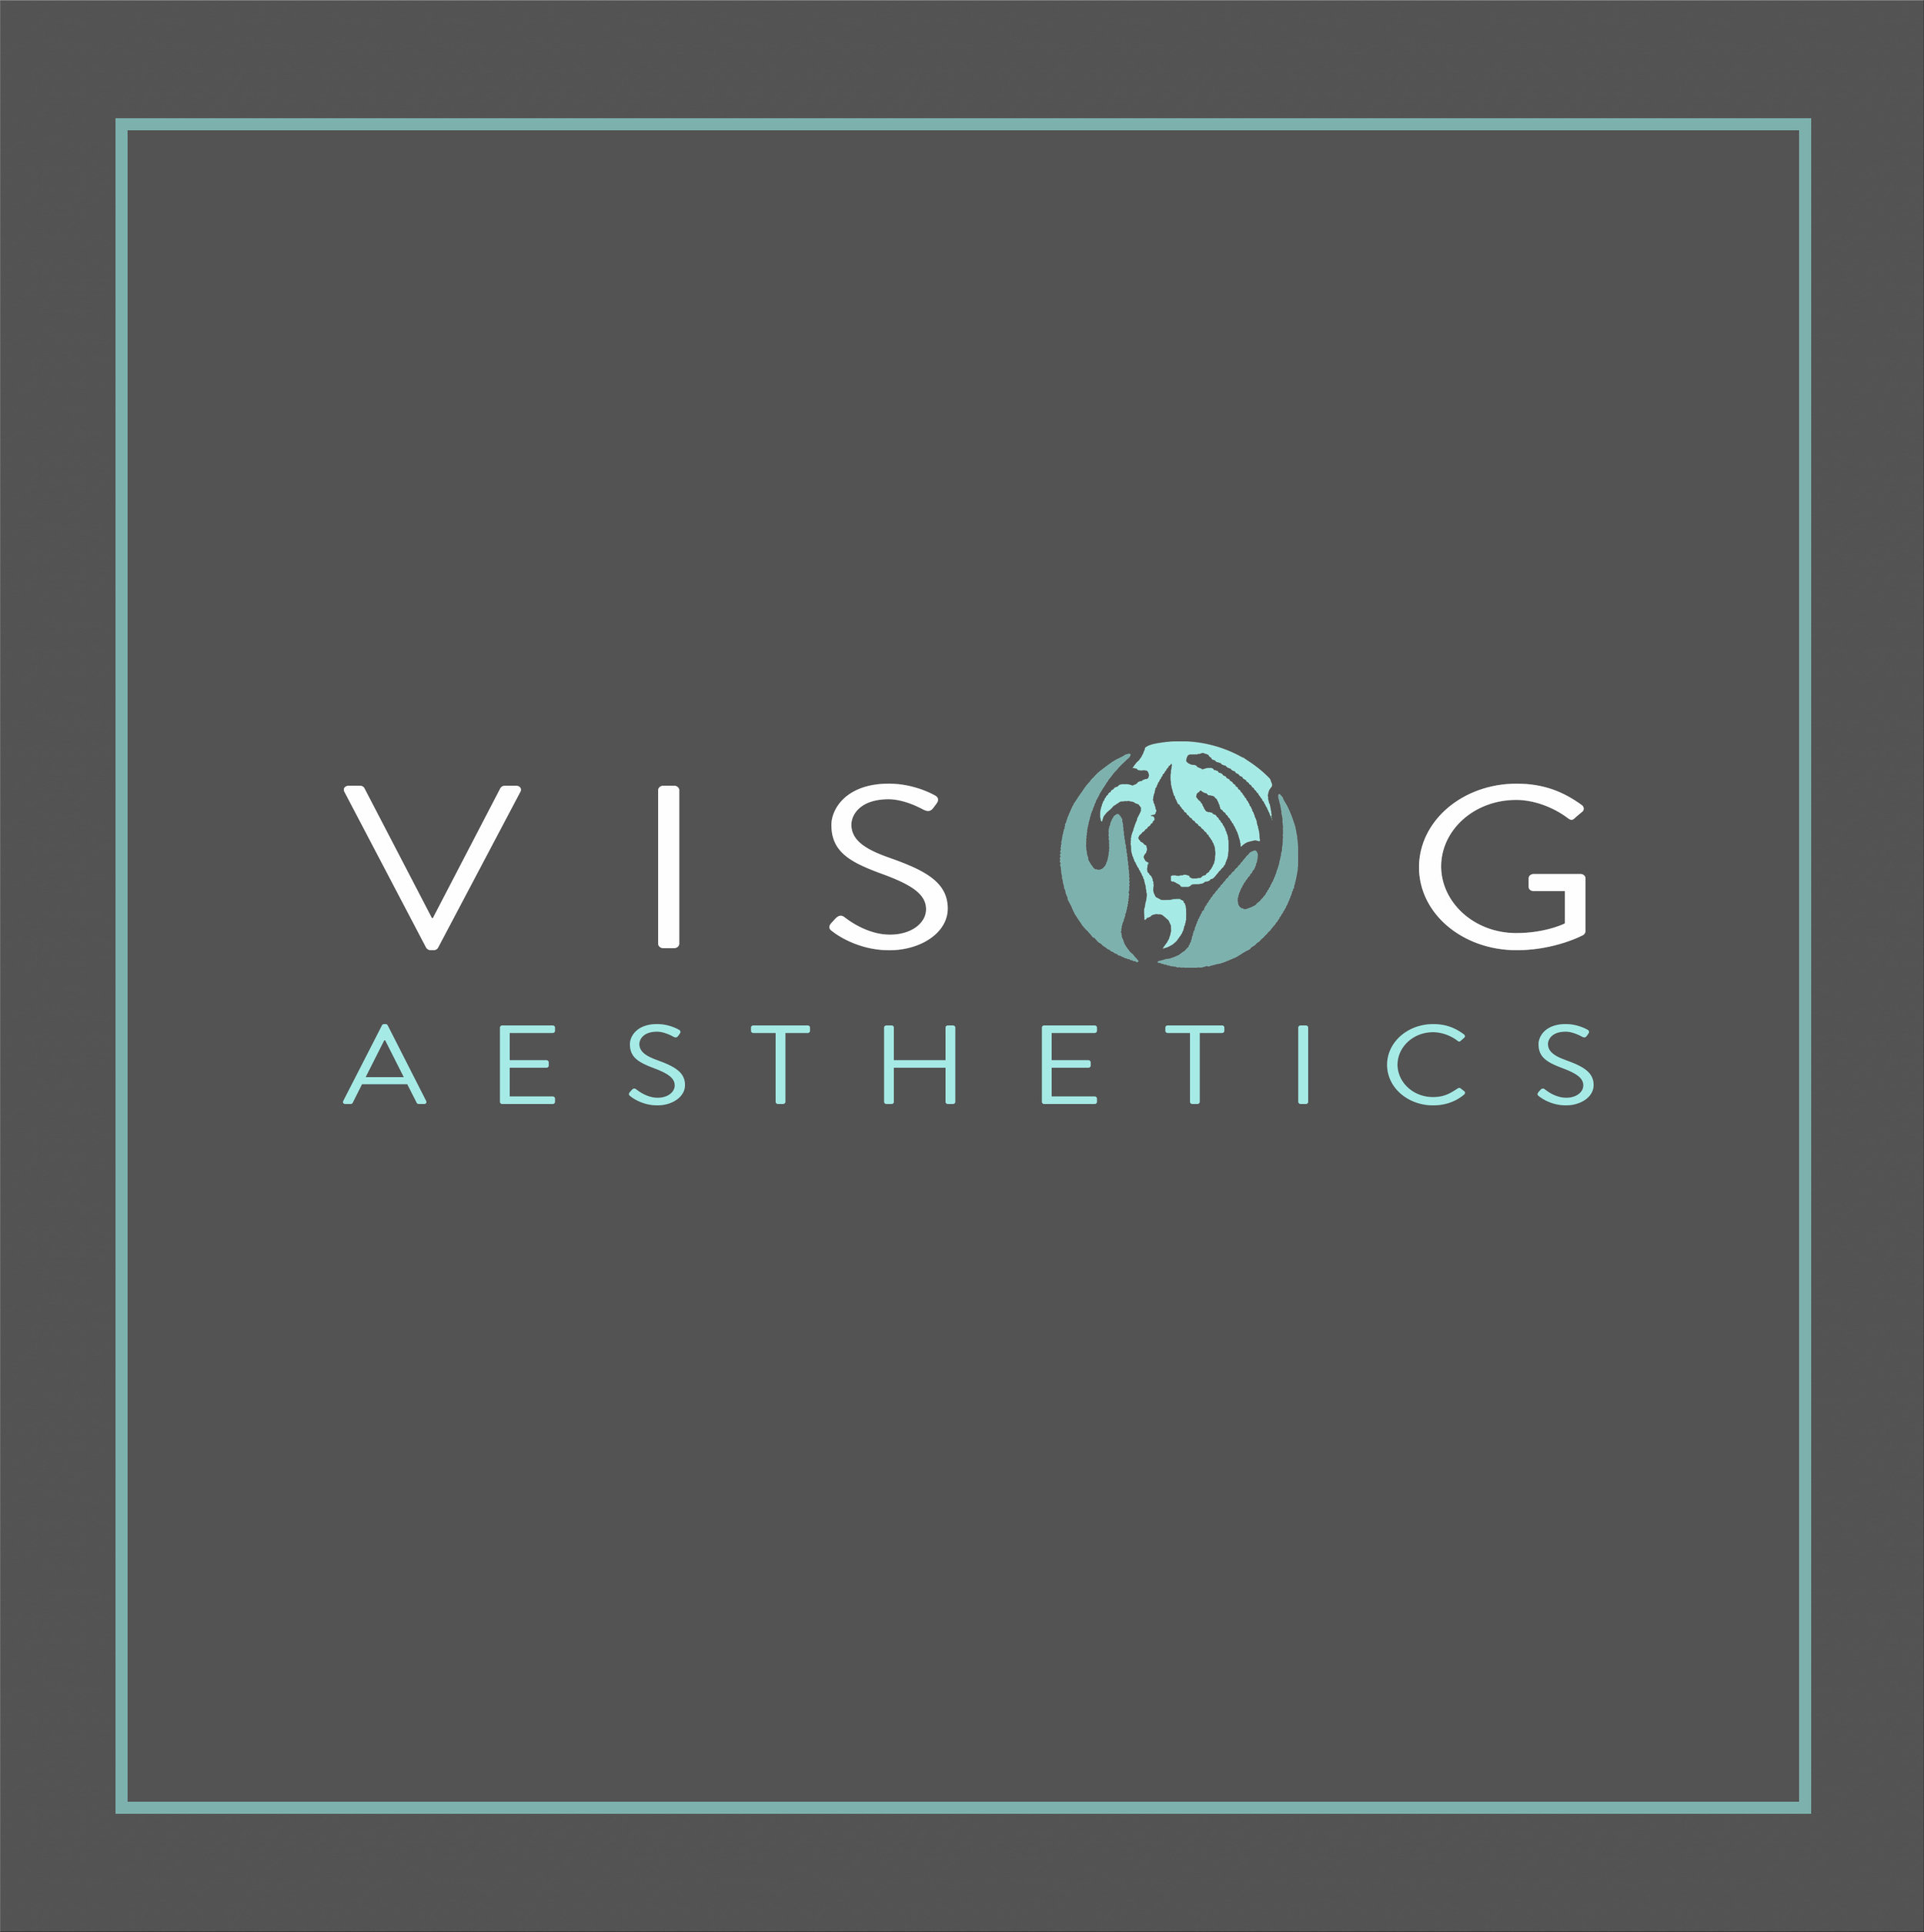 Visog Logo_on grey_square.jpg